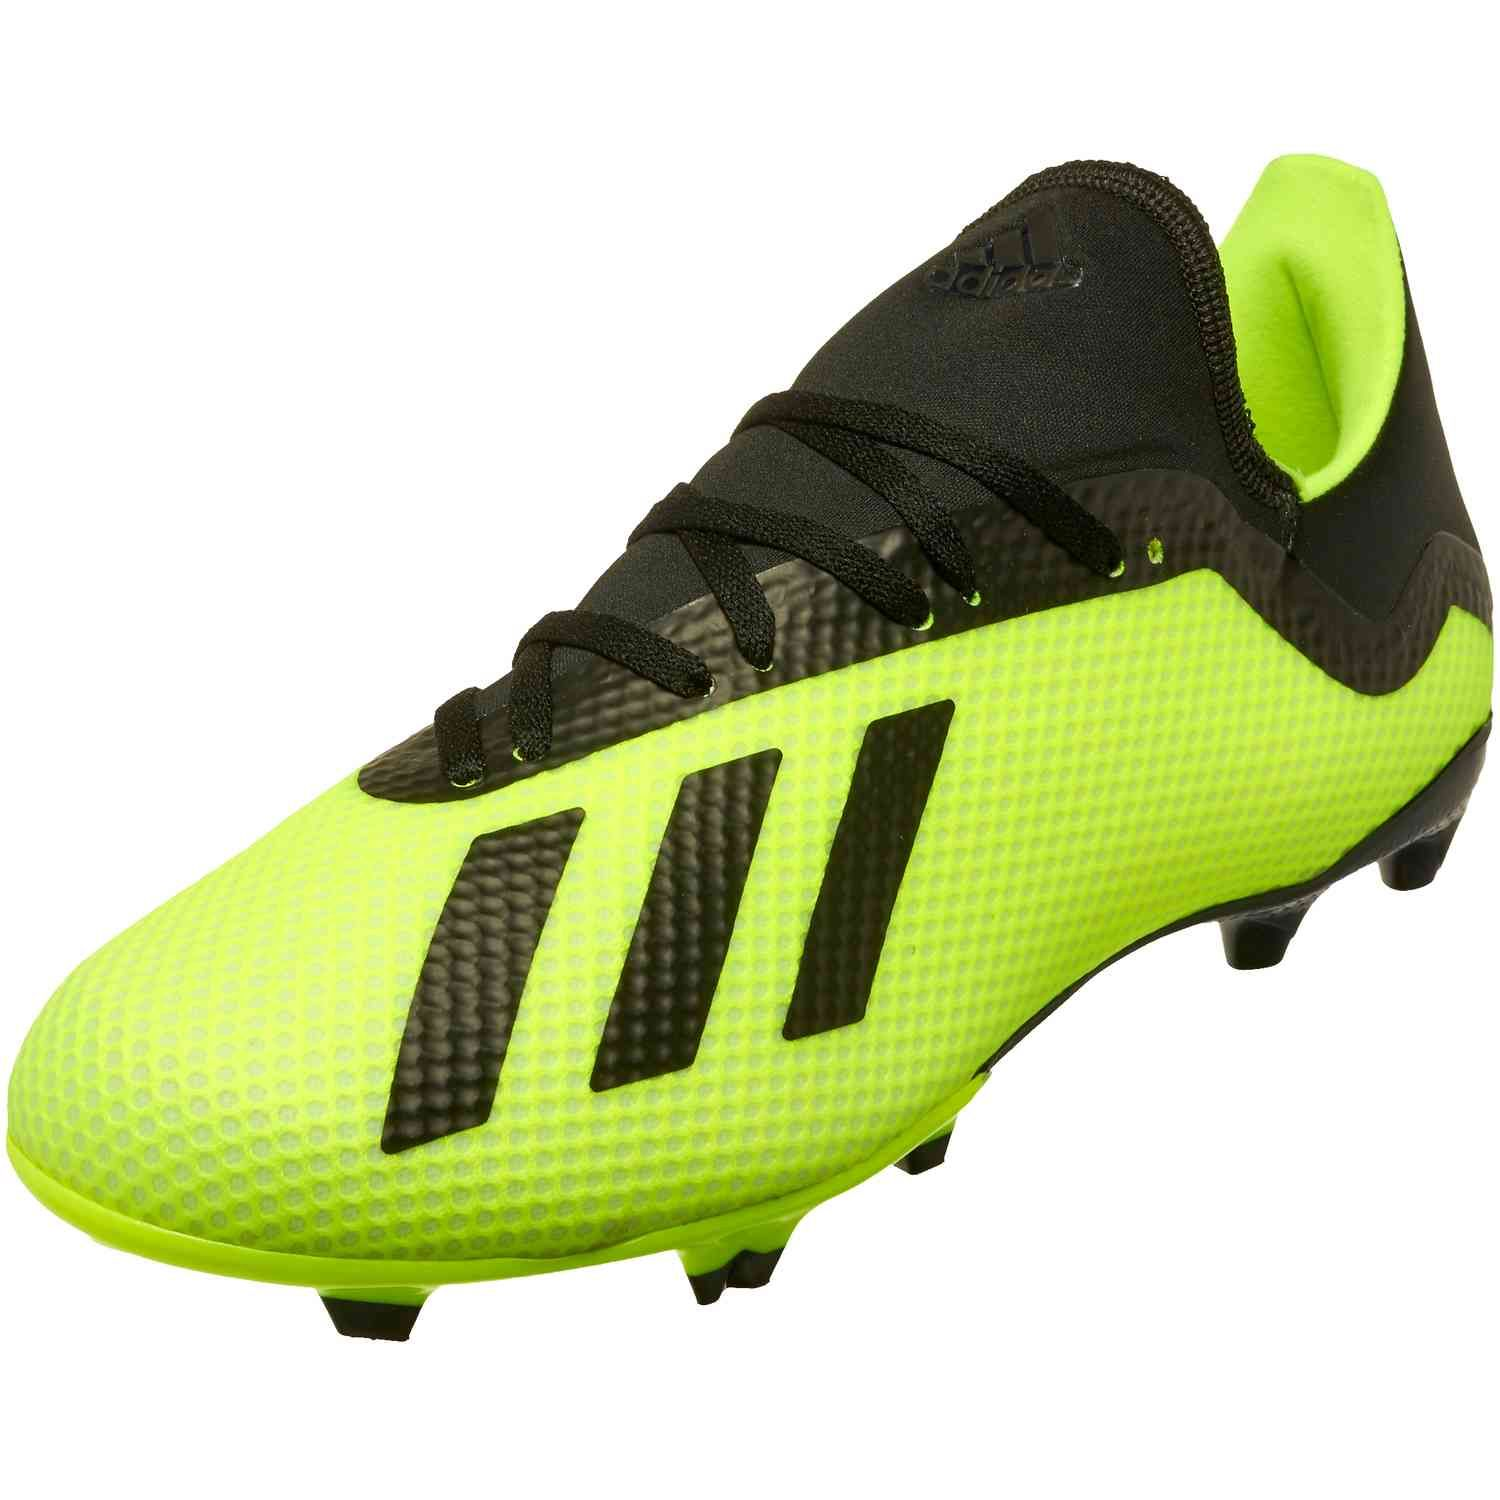 56558966b3e Team Mode pack adidas X18.3 Buy these shoes from www.soccerpro.com